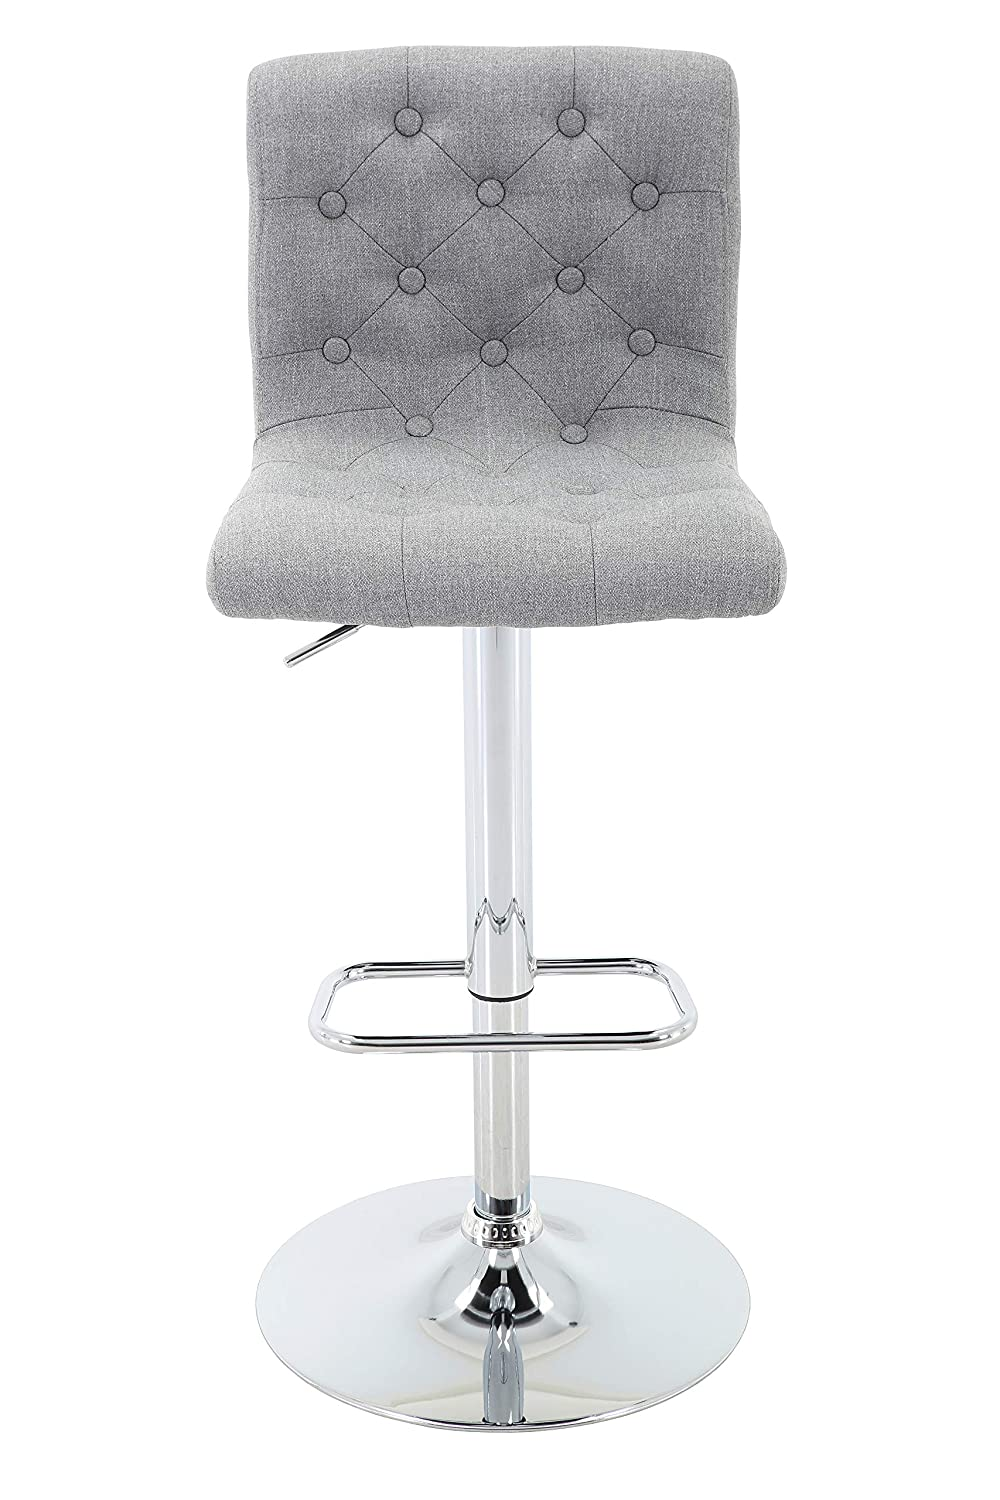 Brage Living Adjustable Height Tufted Upholstered Barstool with Footrest, Light Grey